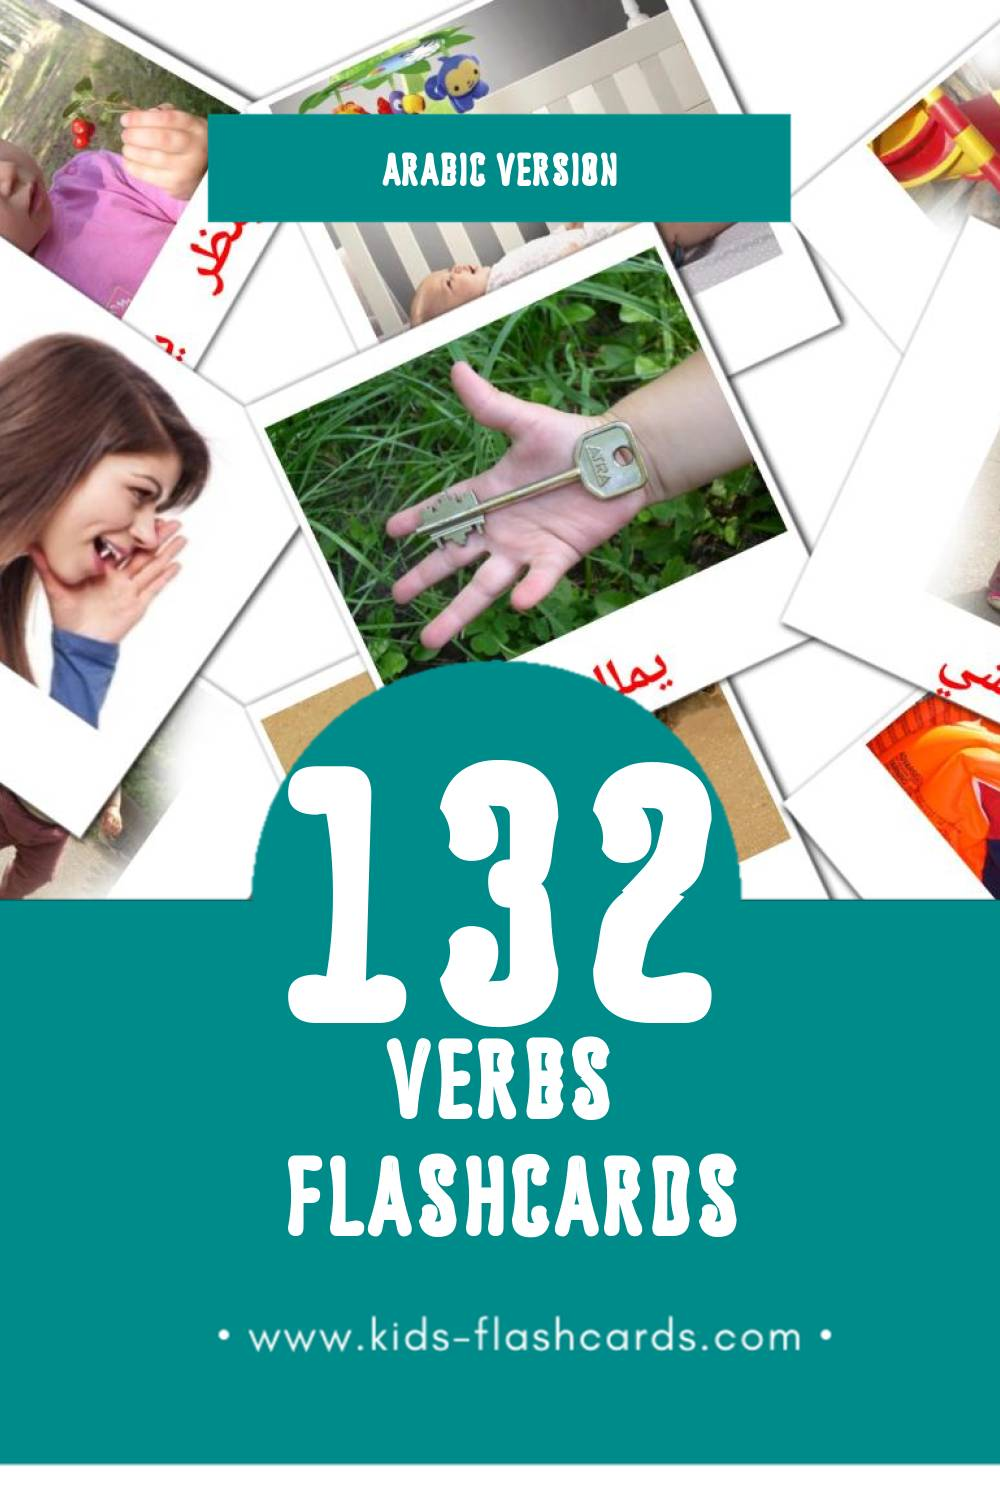 Visual الأفعال Flashcards for Toddlers (110 cards in Arabic)